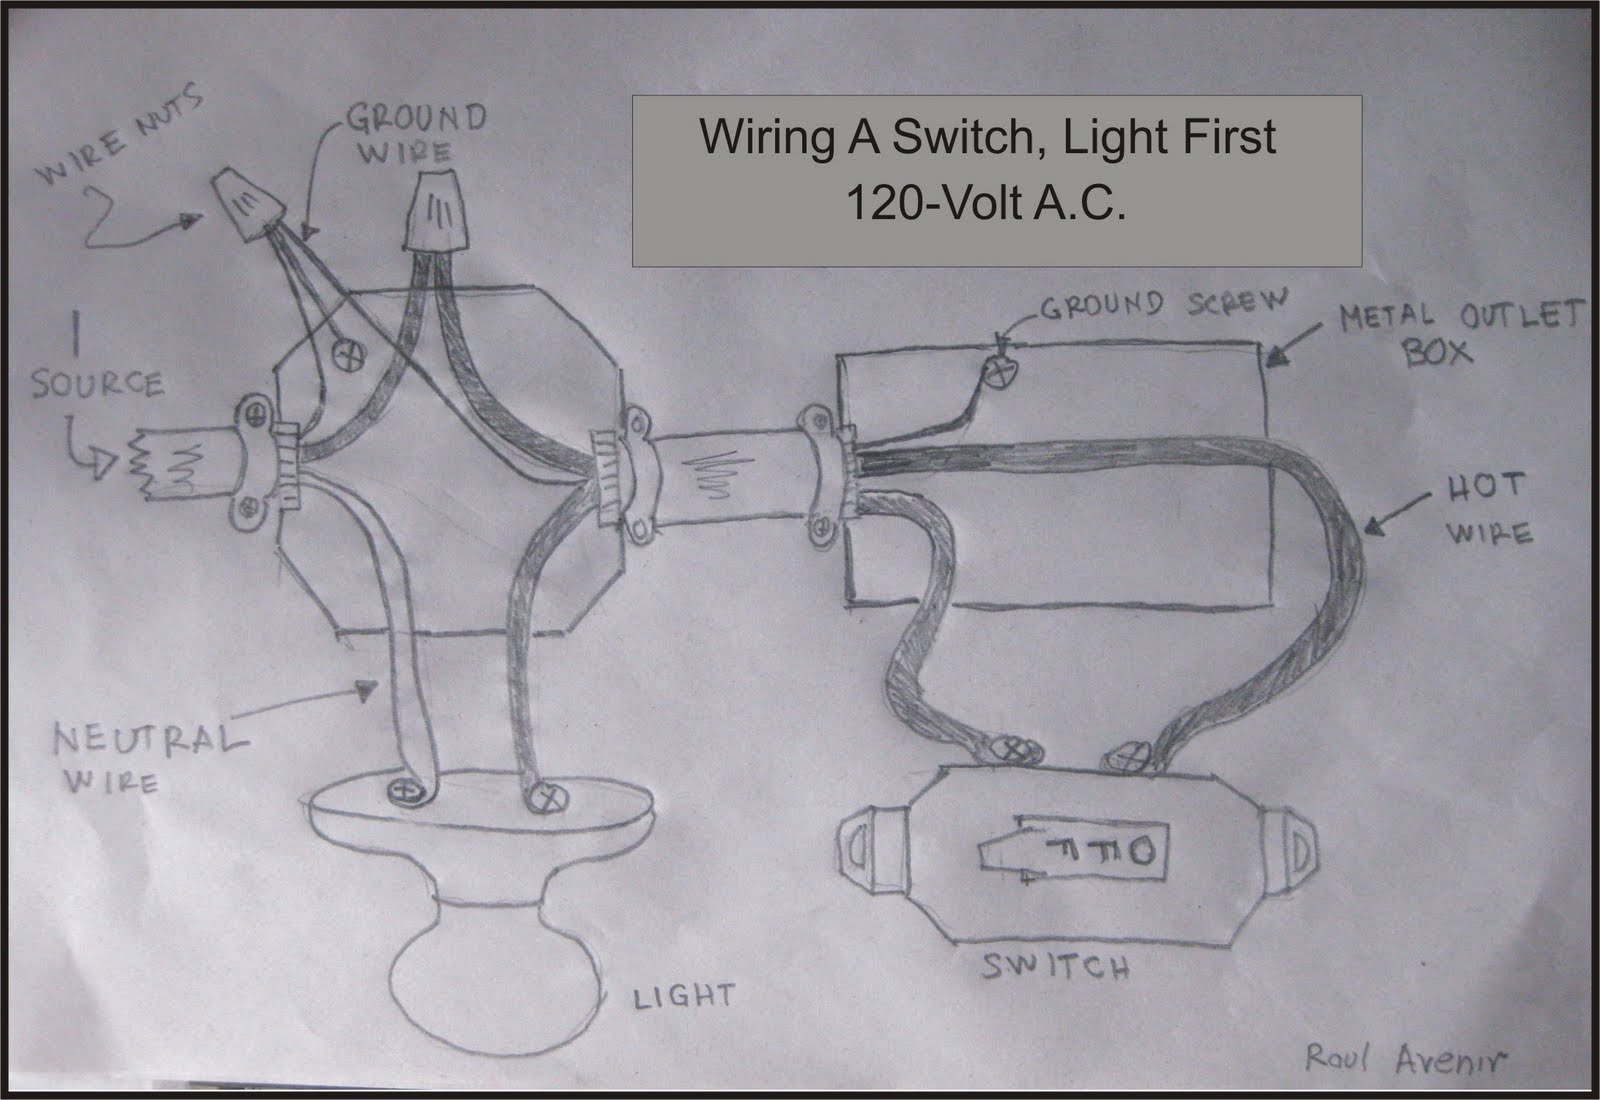 how to wire a ceiling fan light diffe switches install pull switch dualradiopowerplugstereowireharness20pin57jpg [ 1600 x 1100 Pixel ]